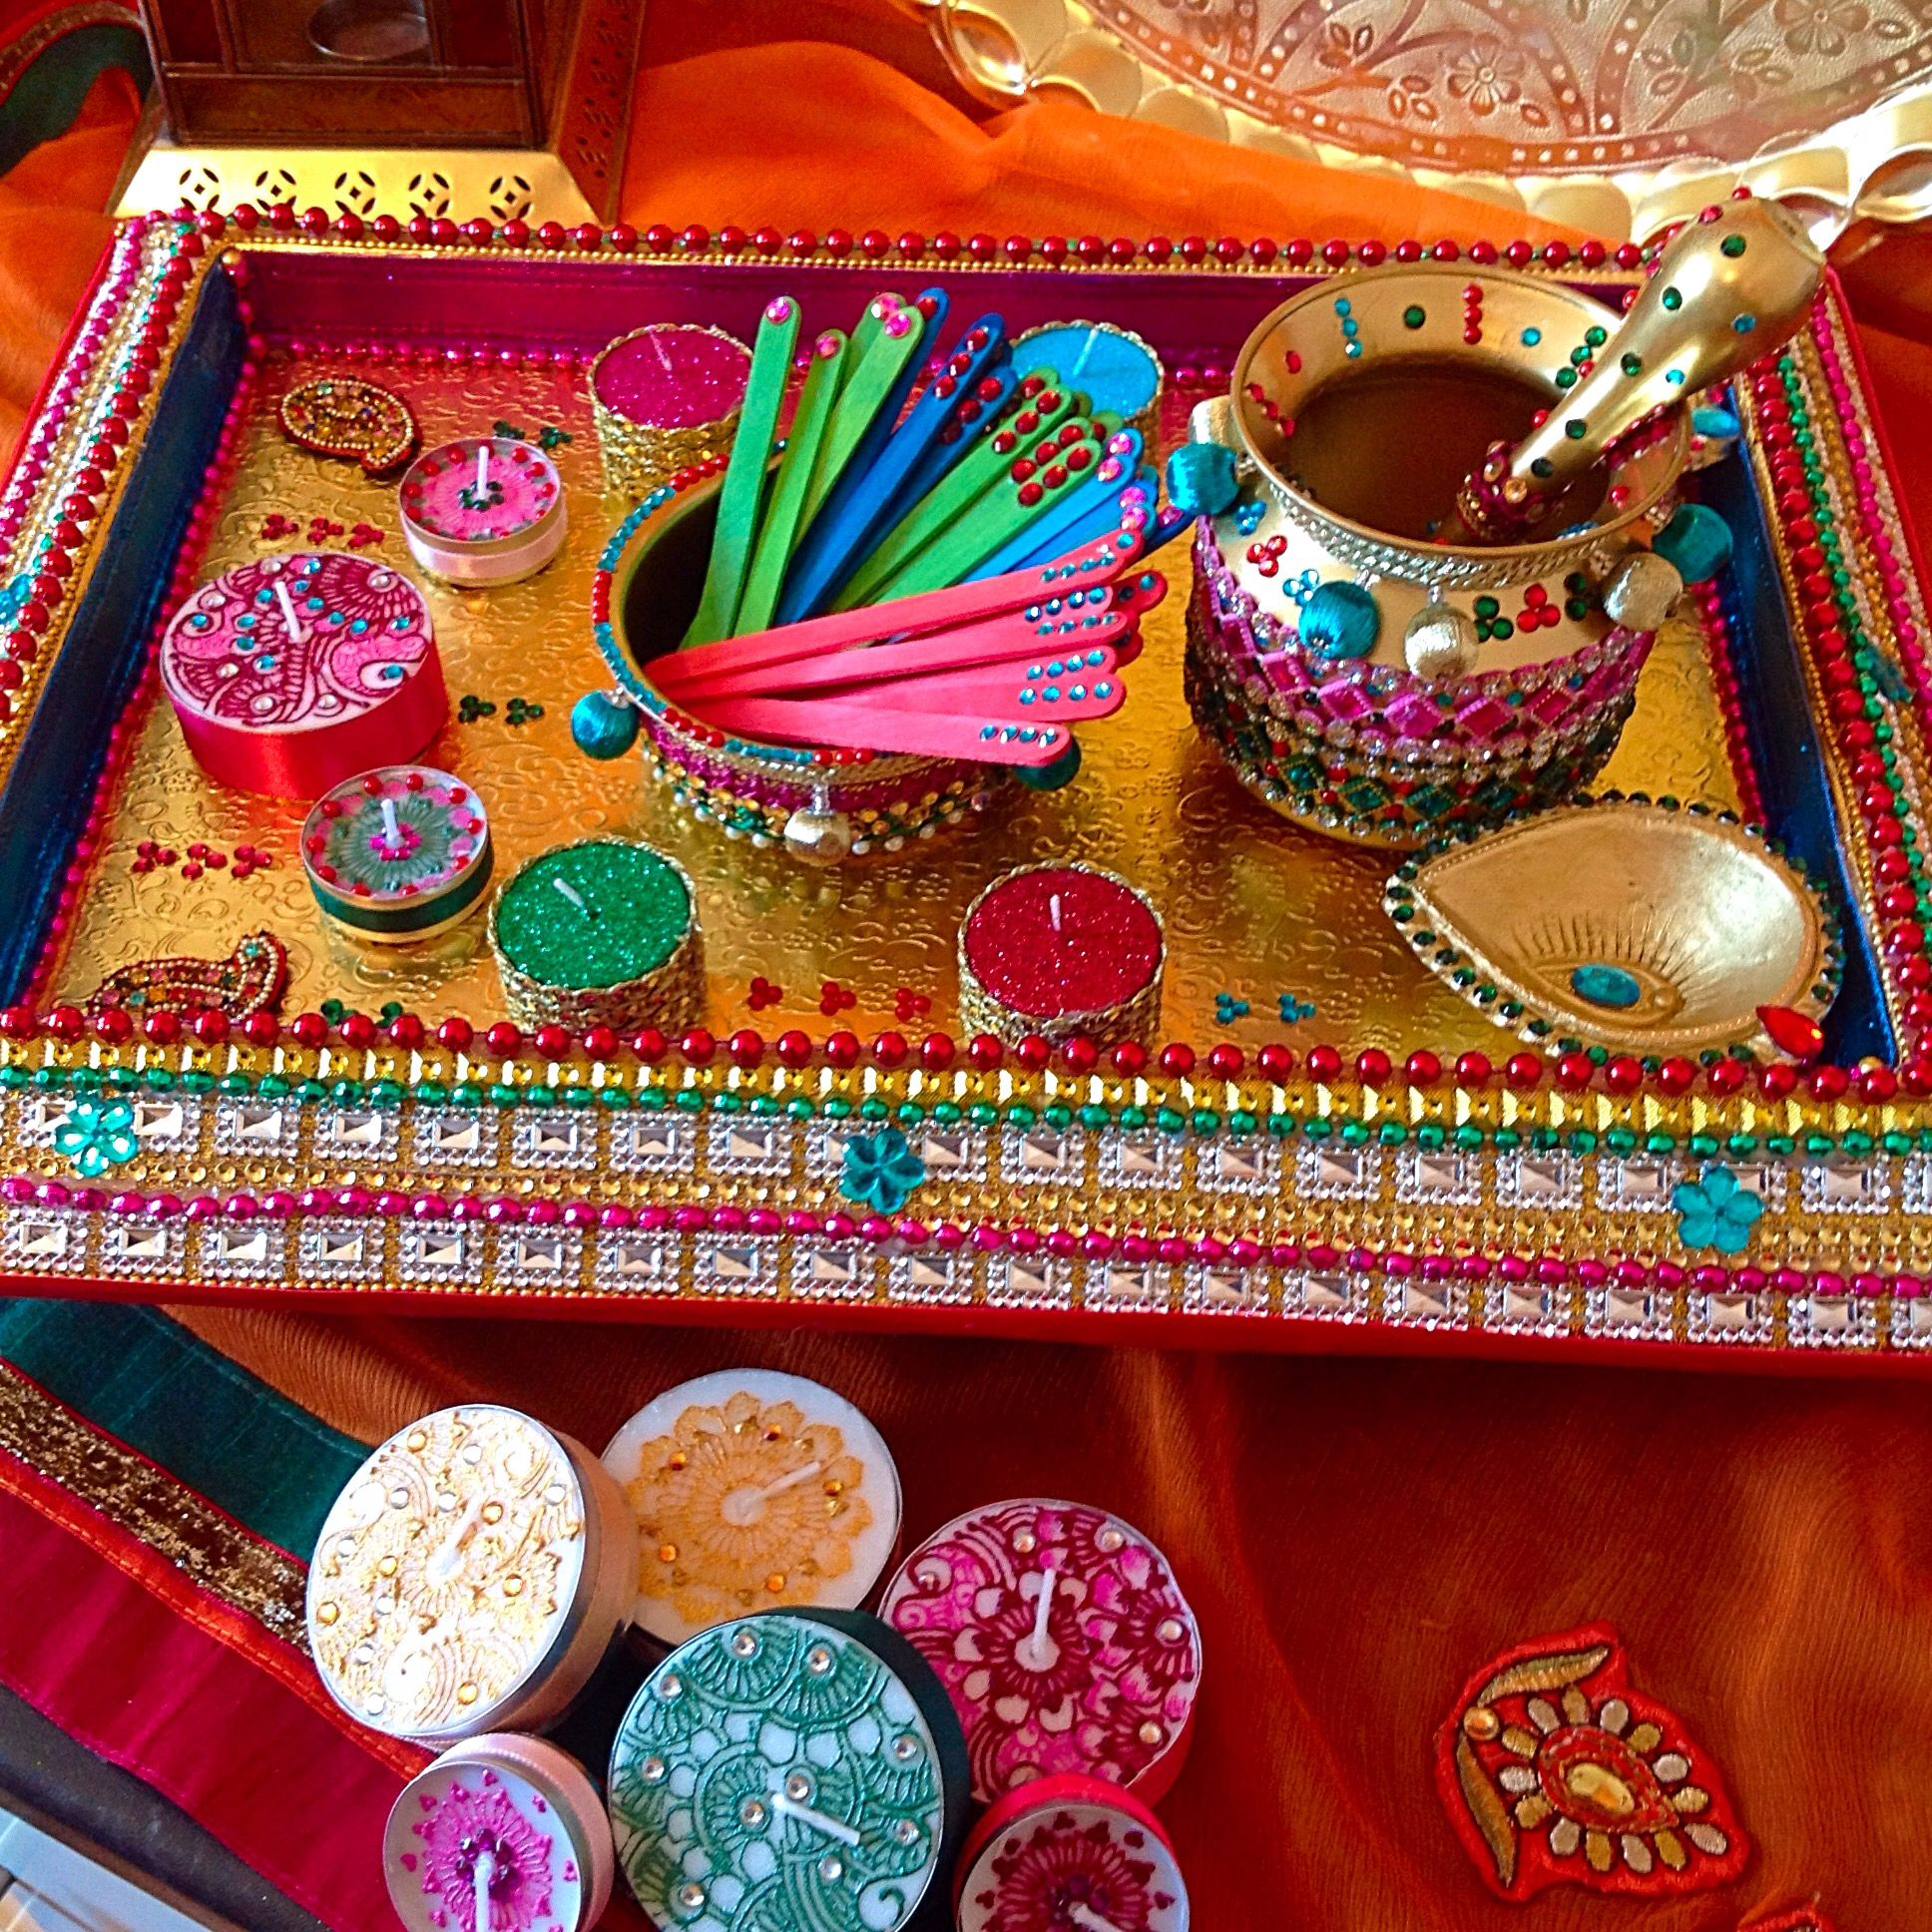 Bridal Mehndi Themes : Large rectangular mehndi plate with matching oil and